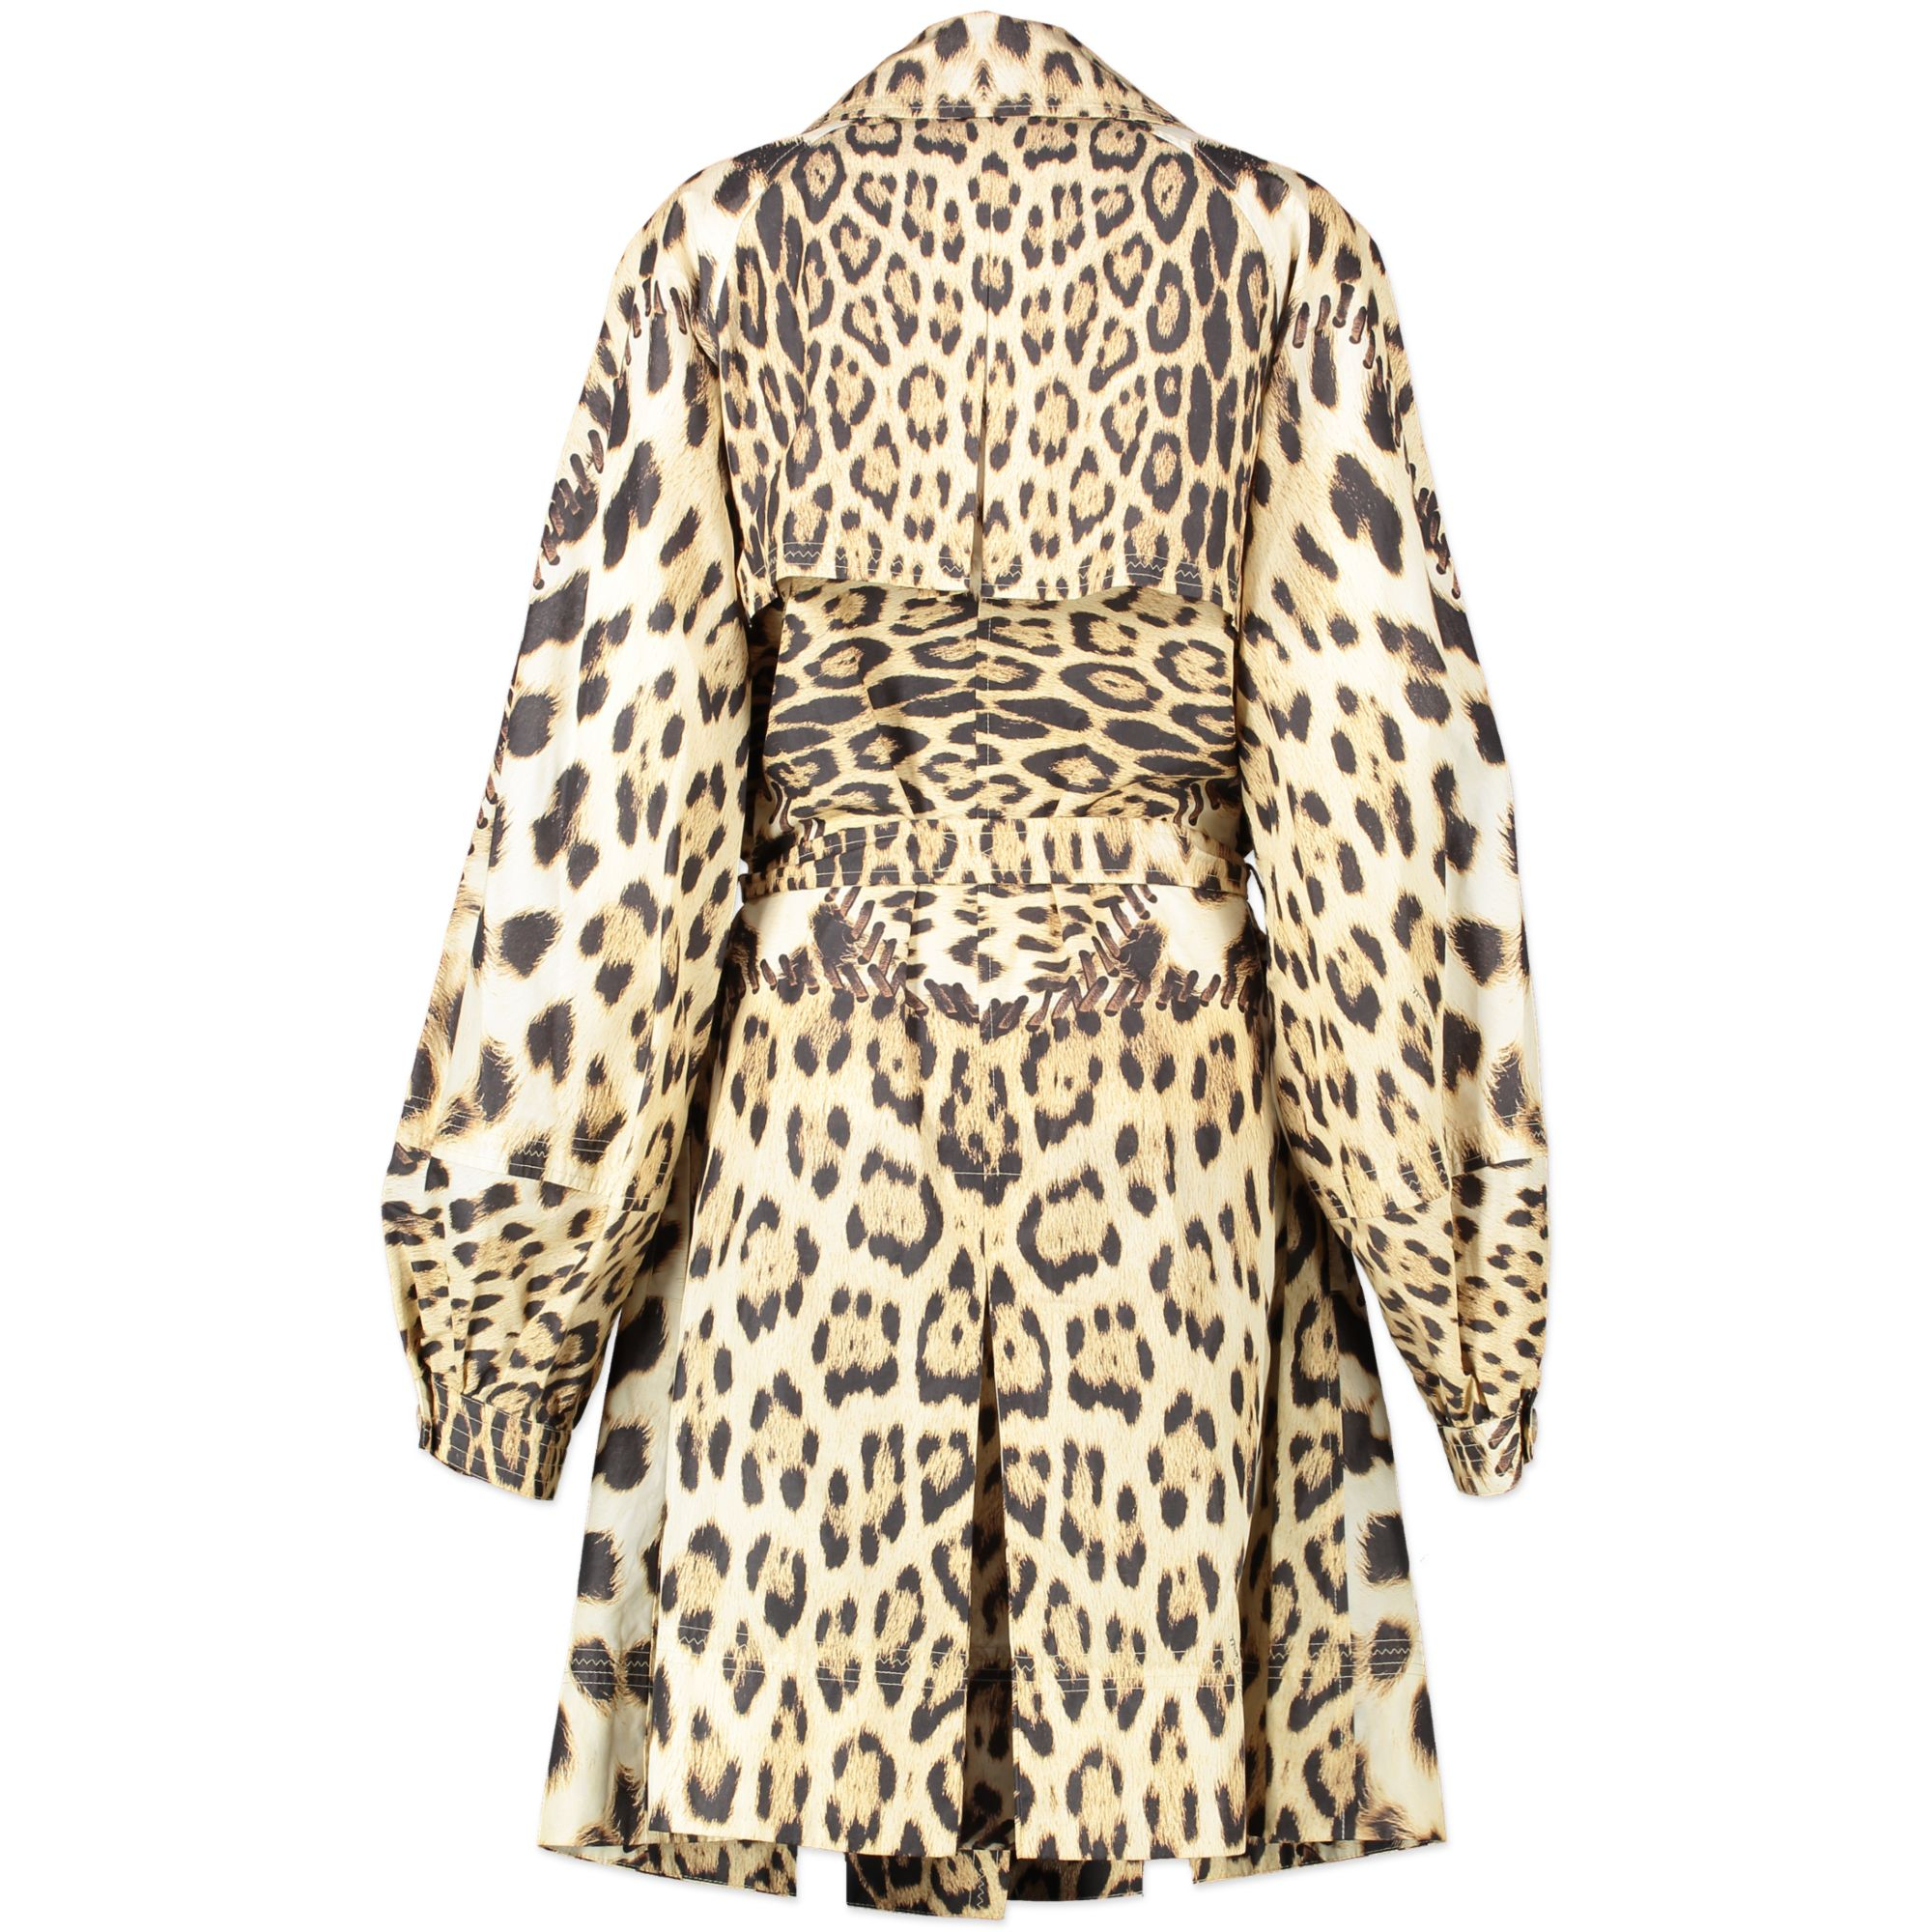 Roberto Cavalli Leopard Trench - size IT48 for sale online at Labellov secondhand